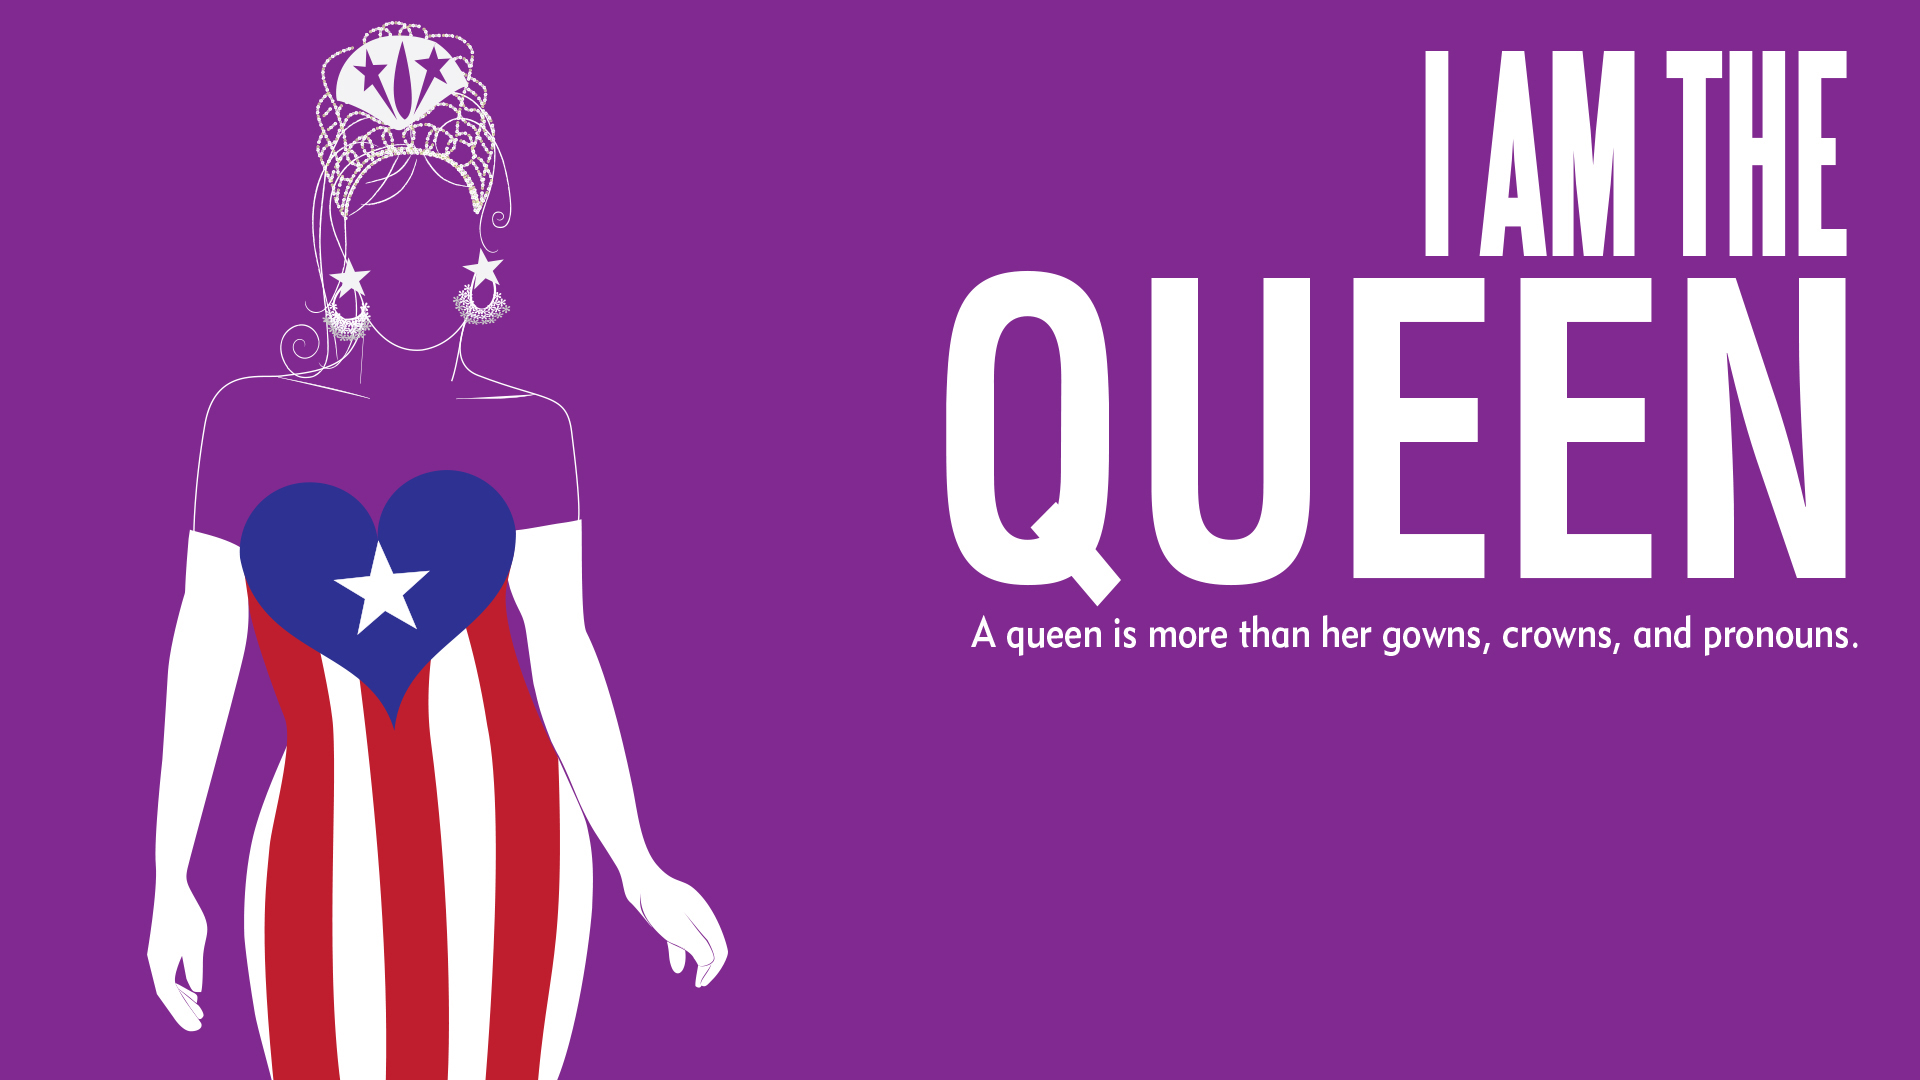 I Am The Queen | A queen is more than her crowns, gowns, and pronouns